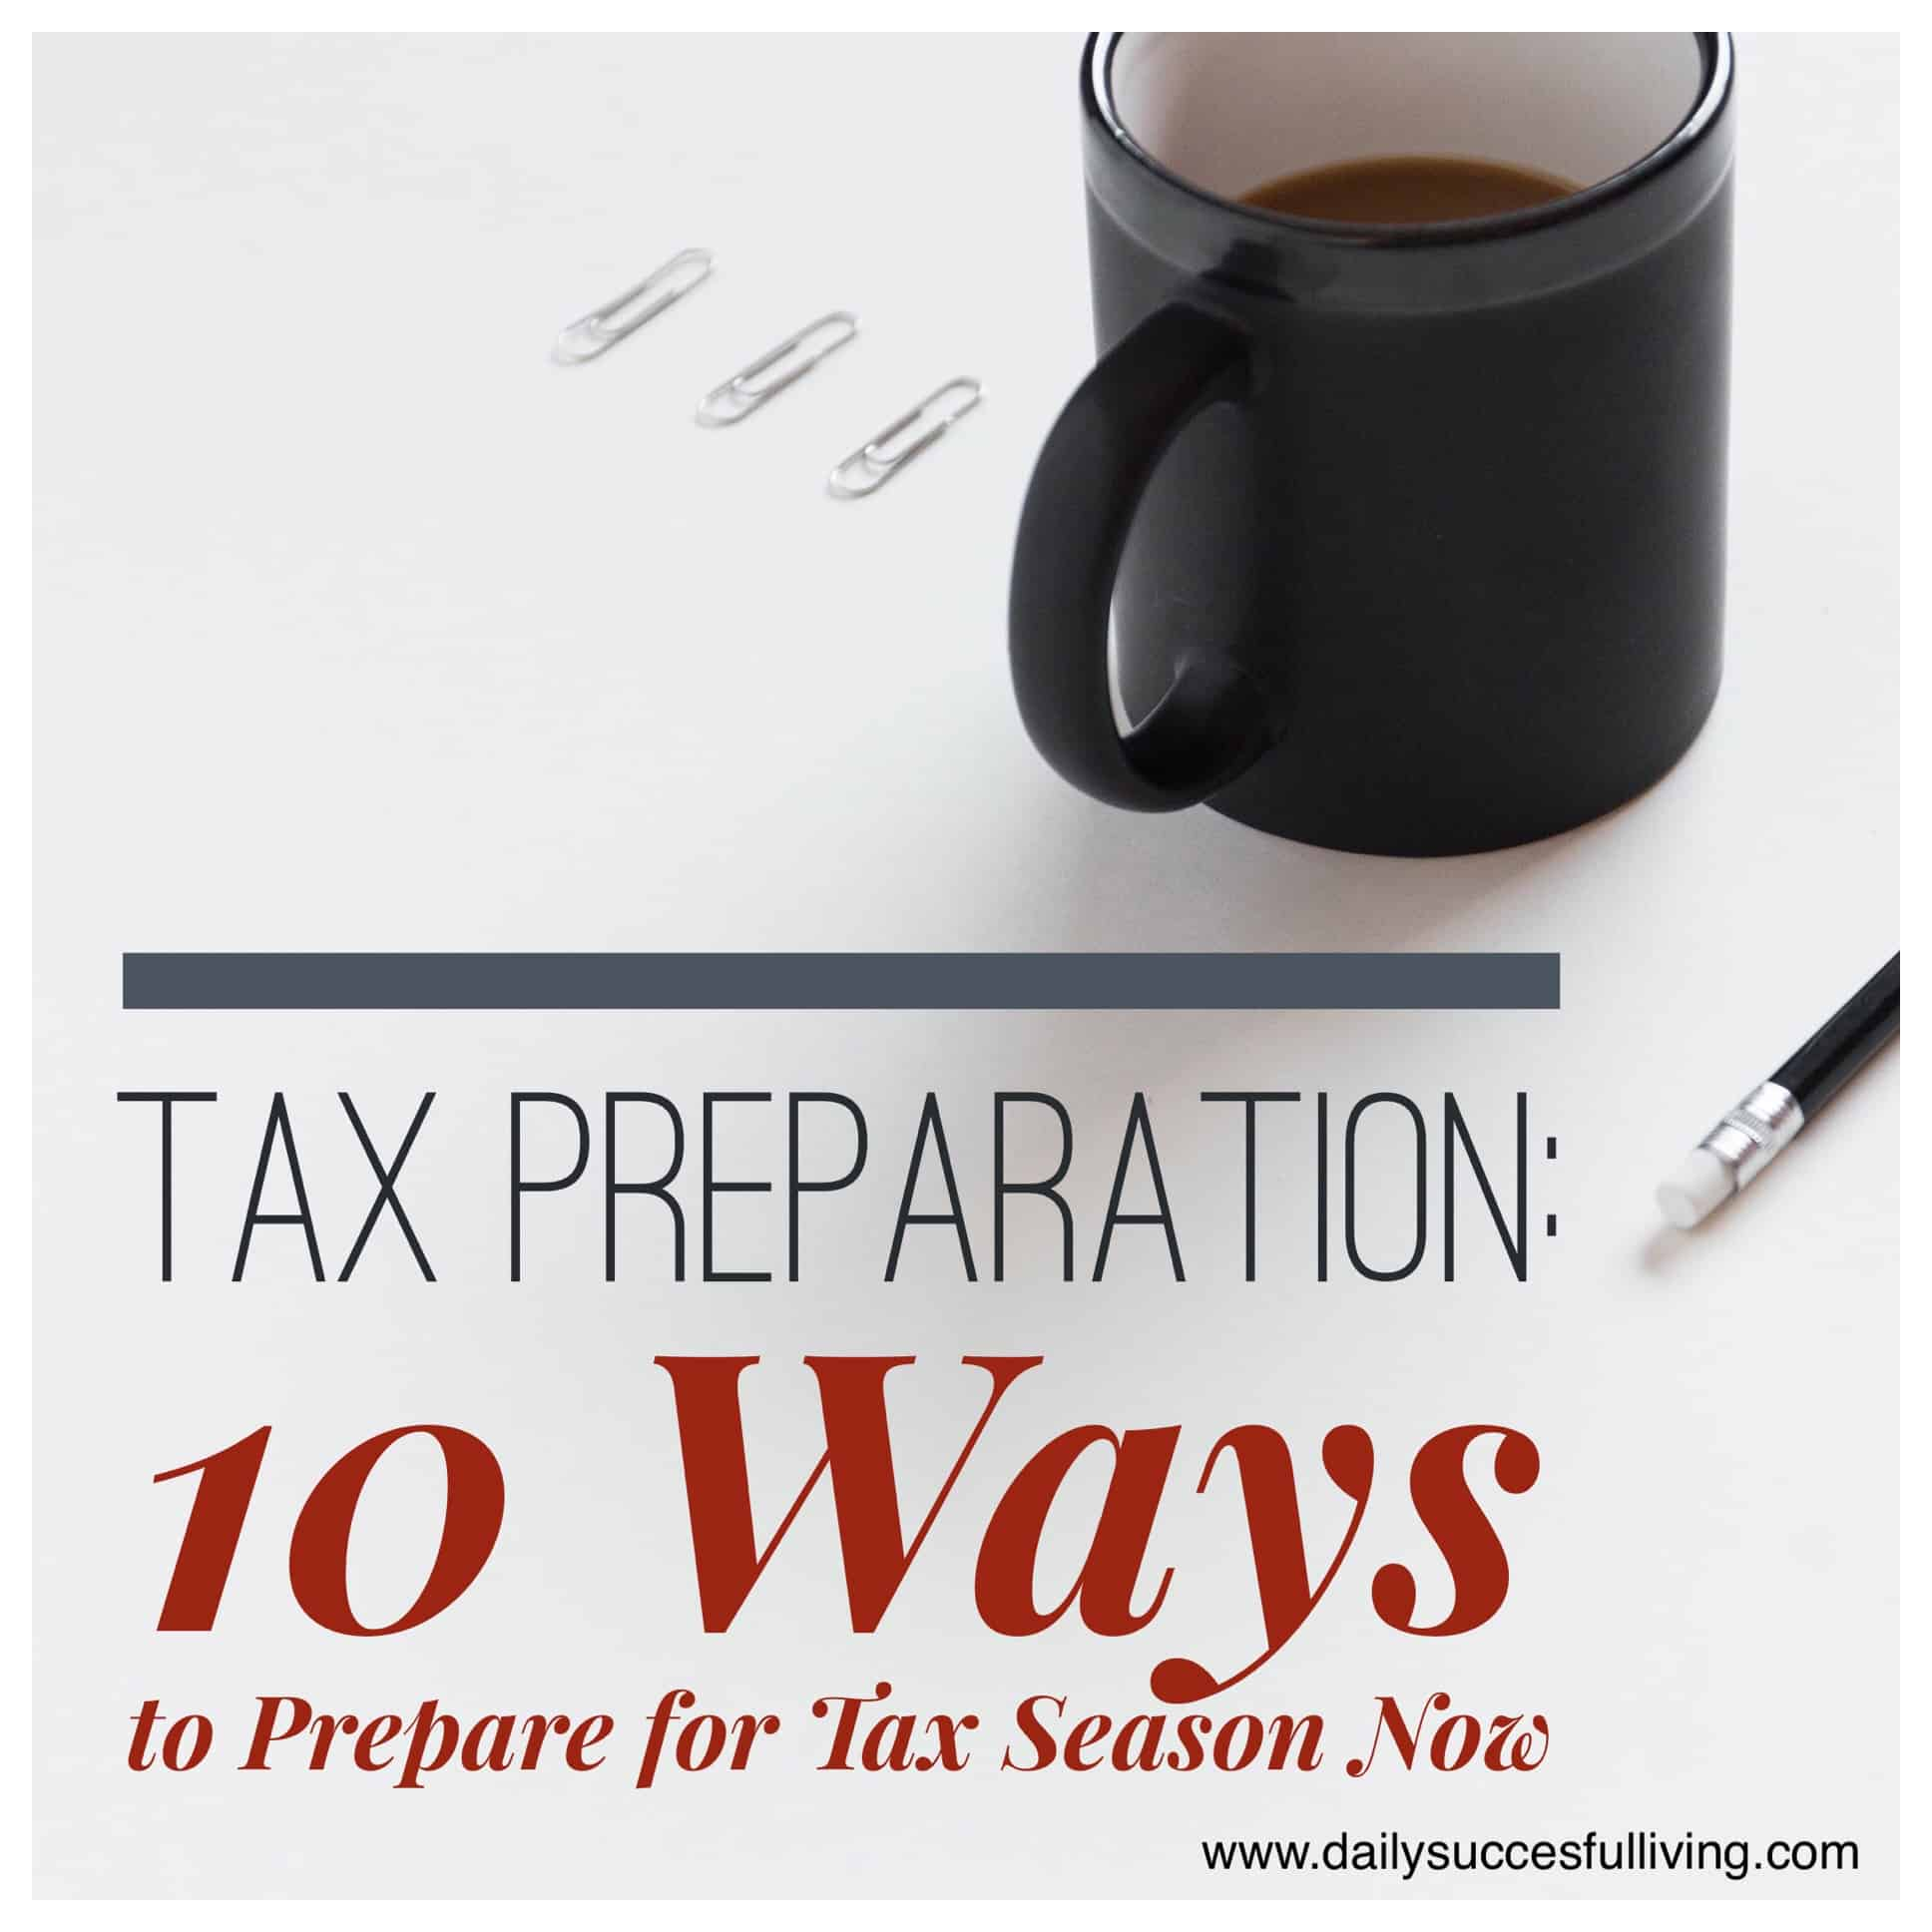 Tax Preparation: 10 ways to Prepare for Tax Season